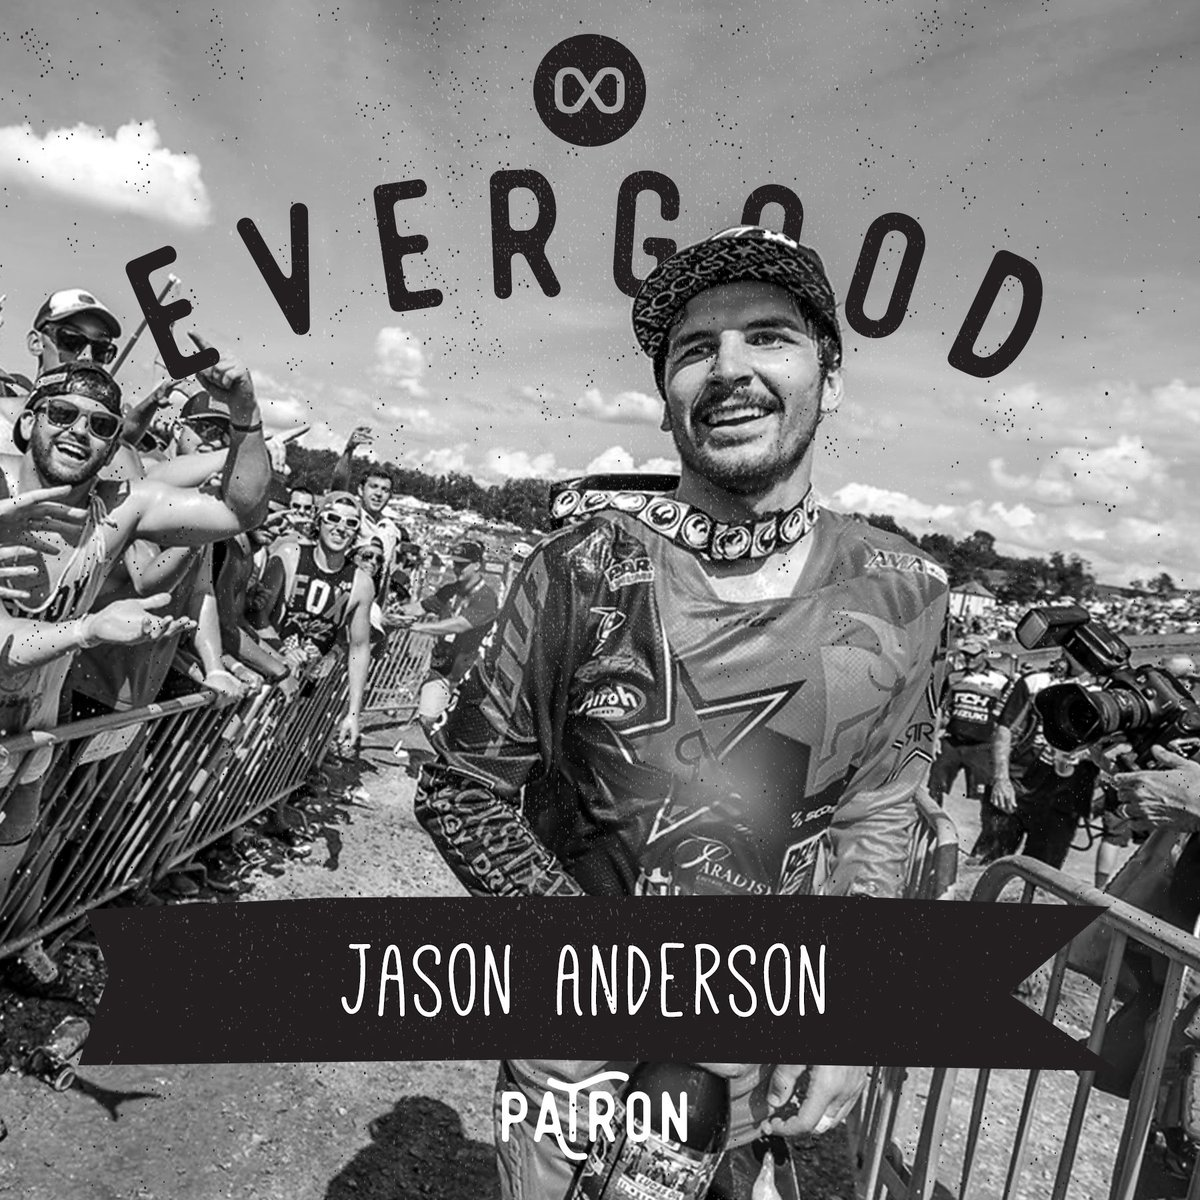 See you all at @oakridgemx this wknd for the #EvergoodOpen ✌🏼 #Friday #WeOut https://t.co/G1b6FWciiS